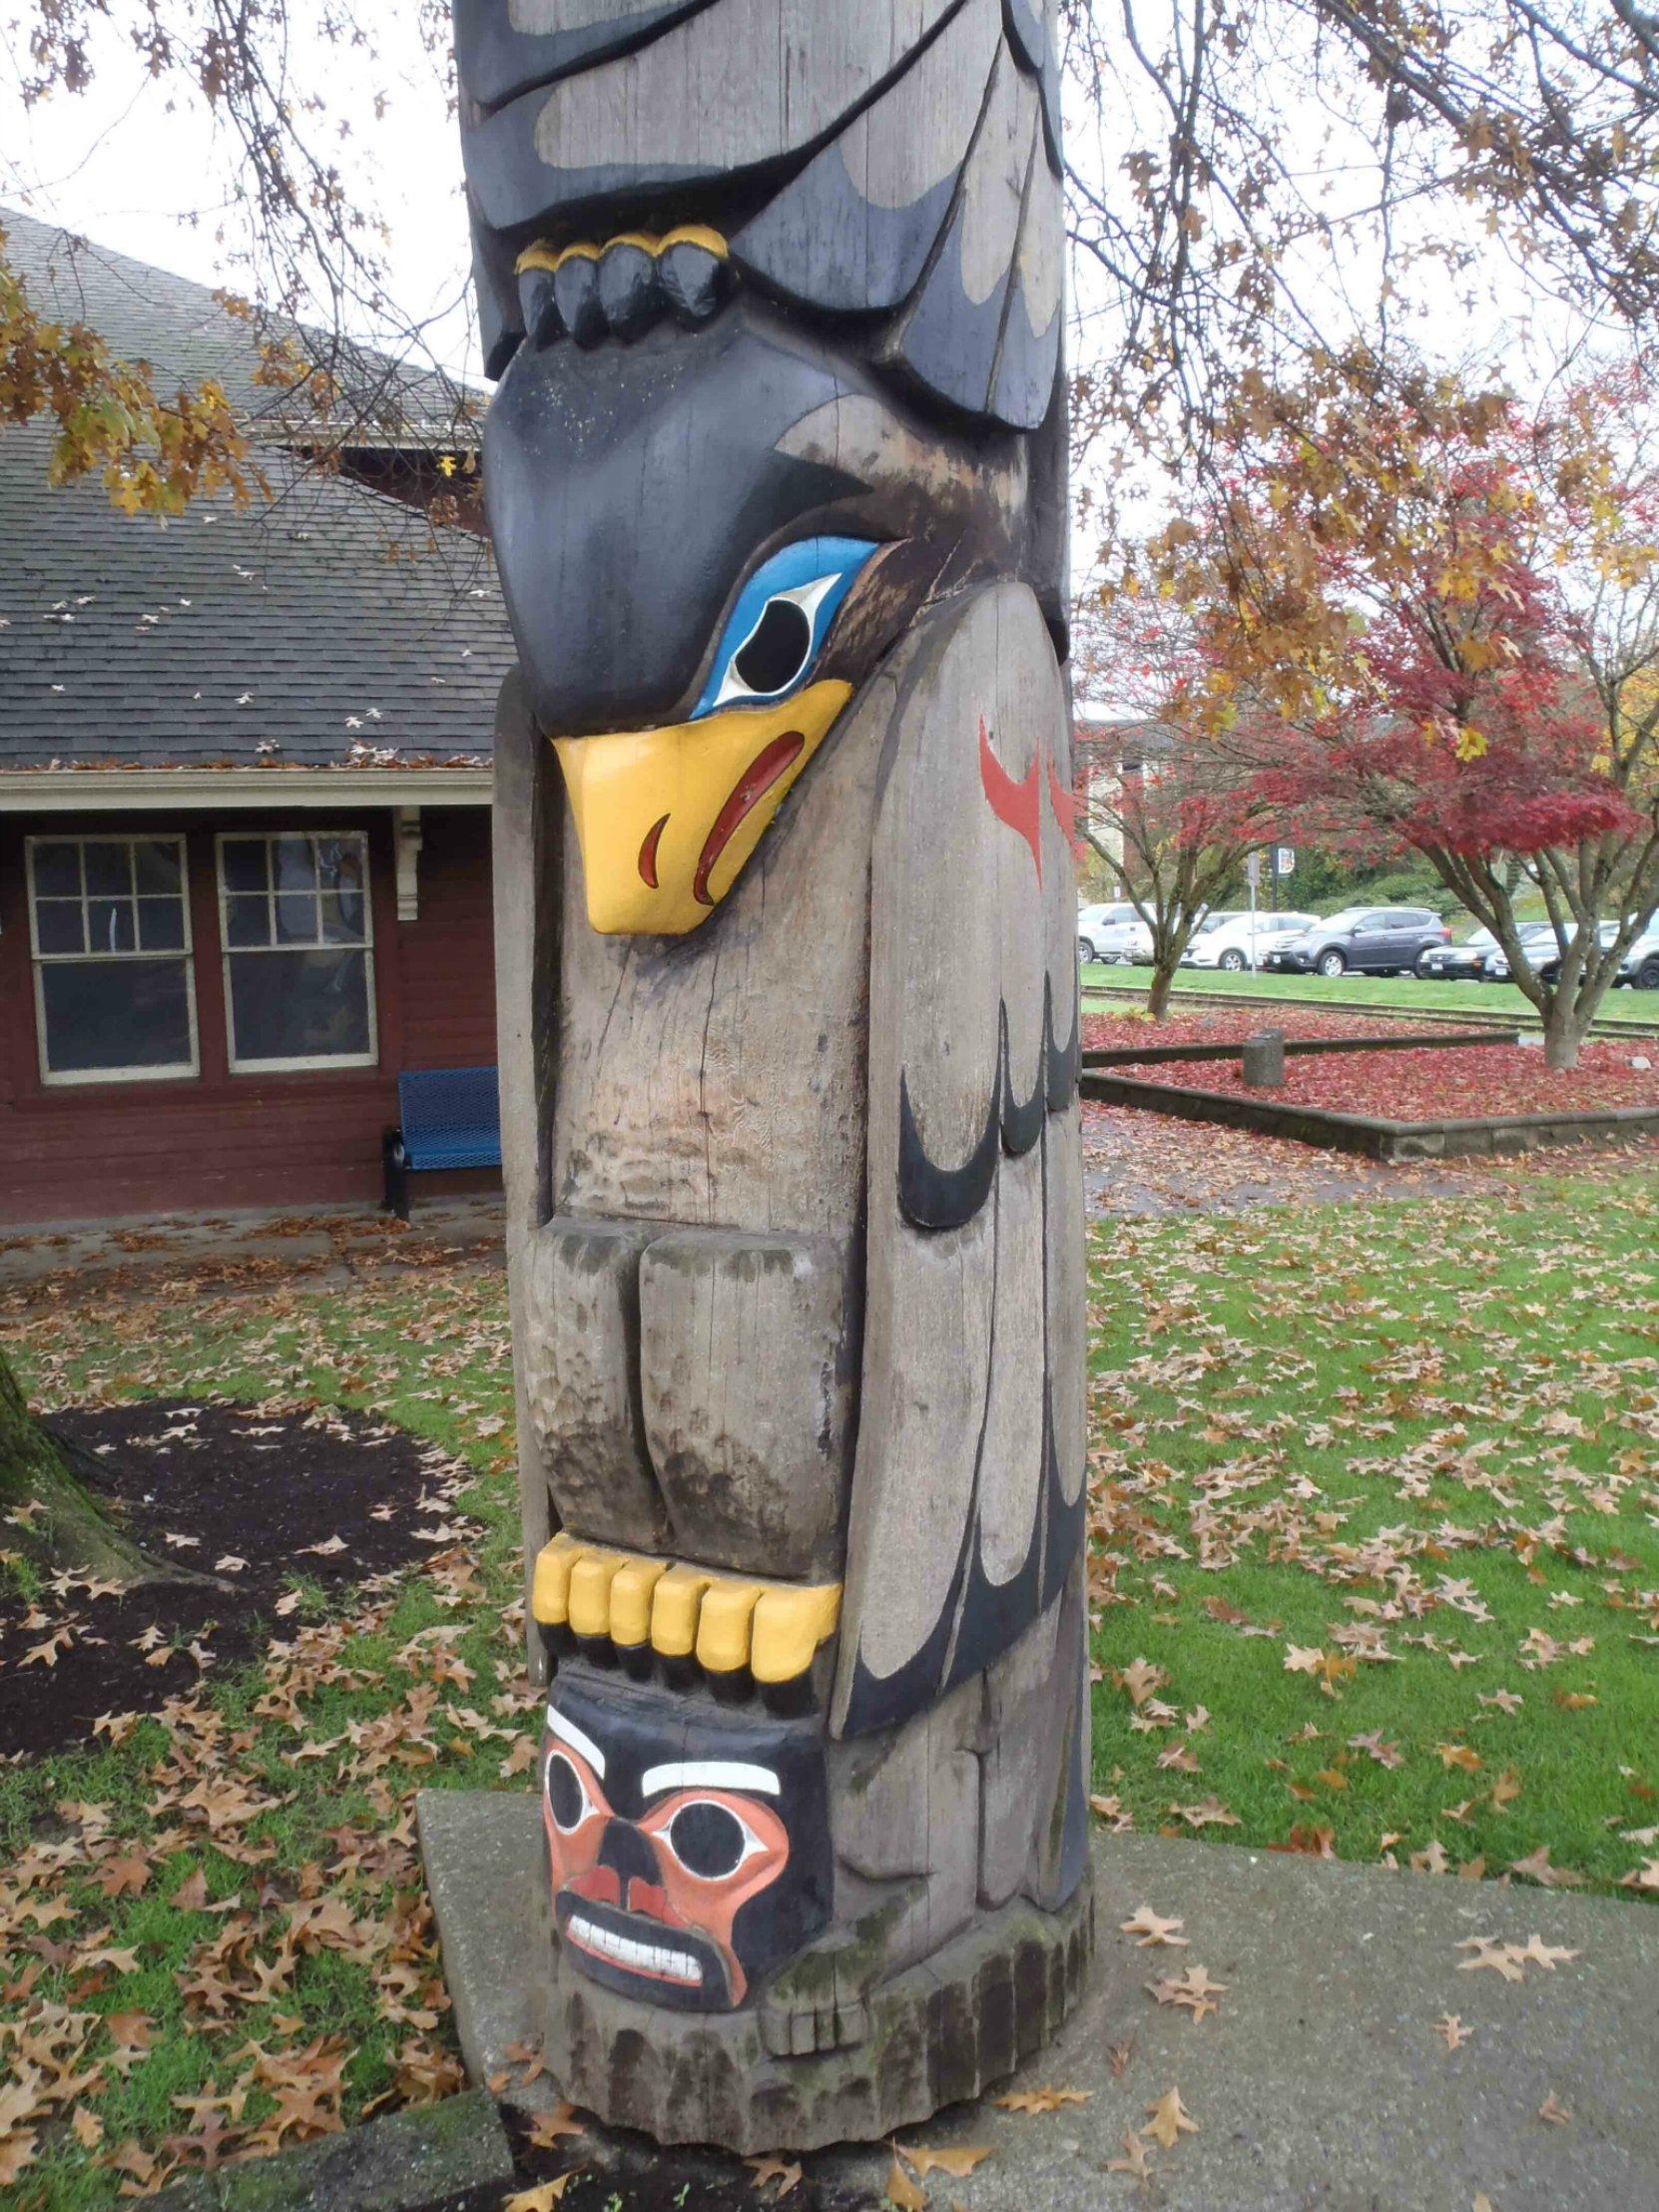 Transformation In Life totem pole, Bald Eagle and Man figures, Canada Avenue, Duncan, B.C.